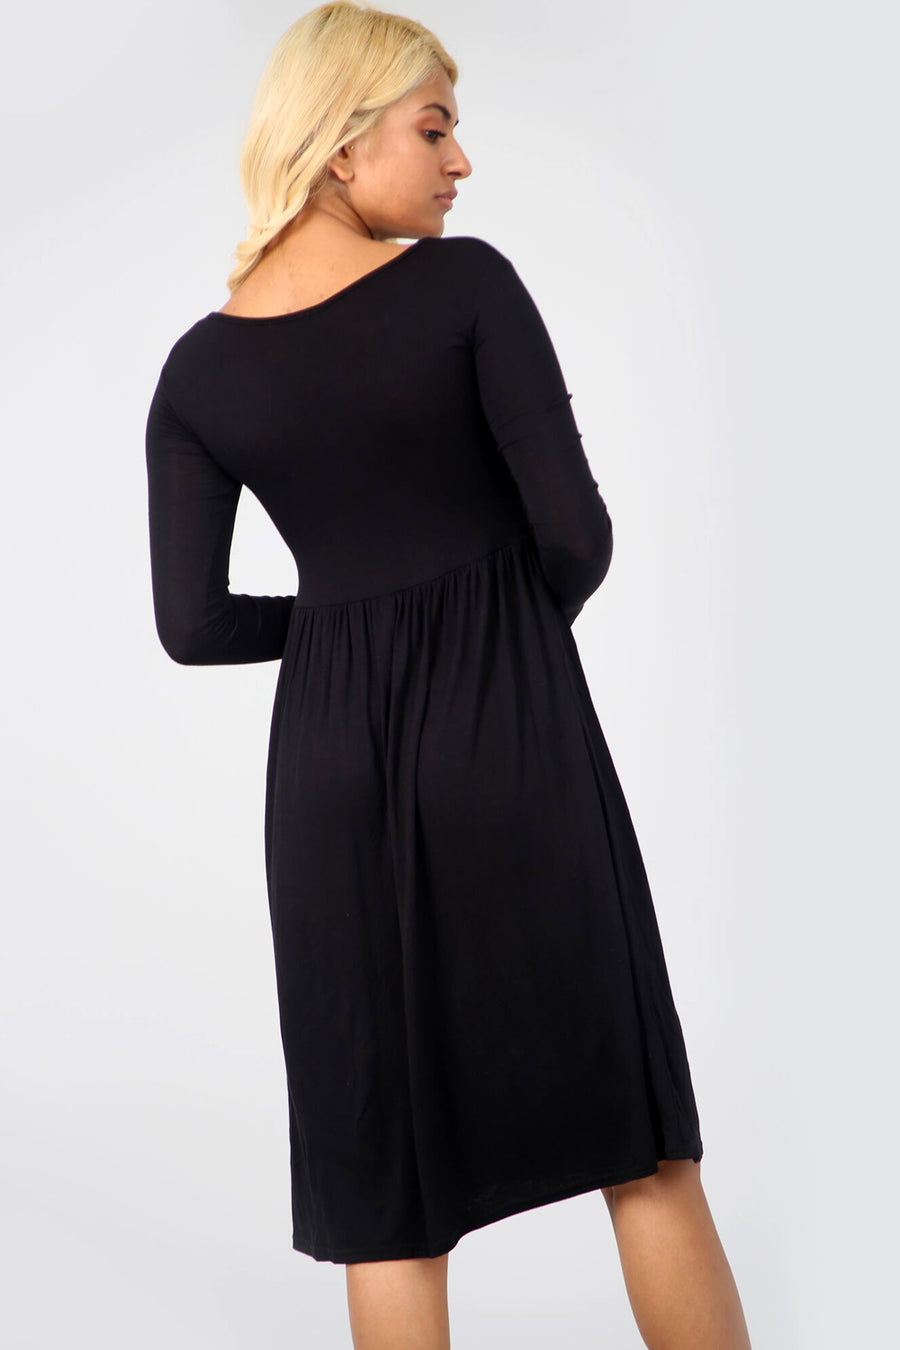 Long Sleeve Basic Black Midi Swing Dress - bejealous-com